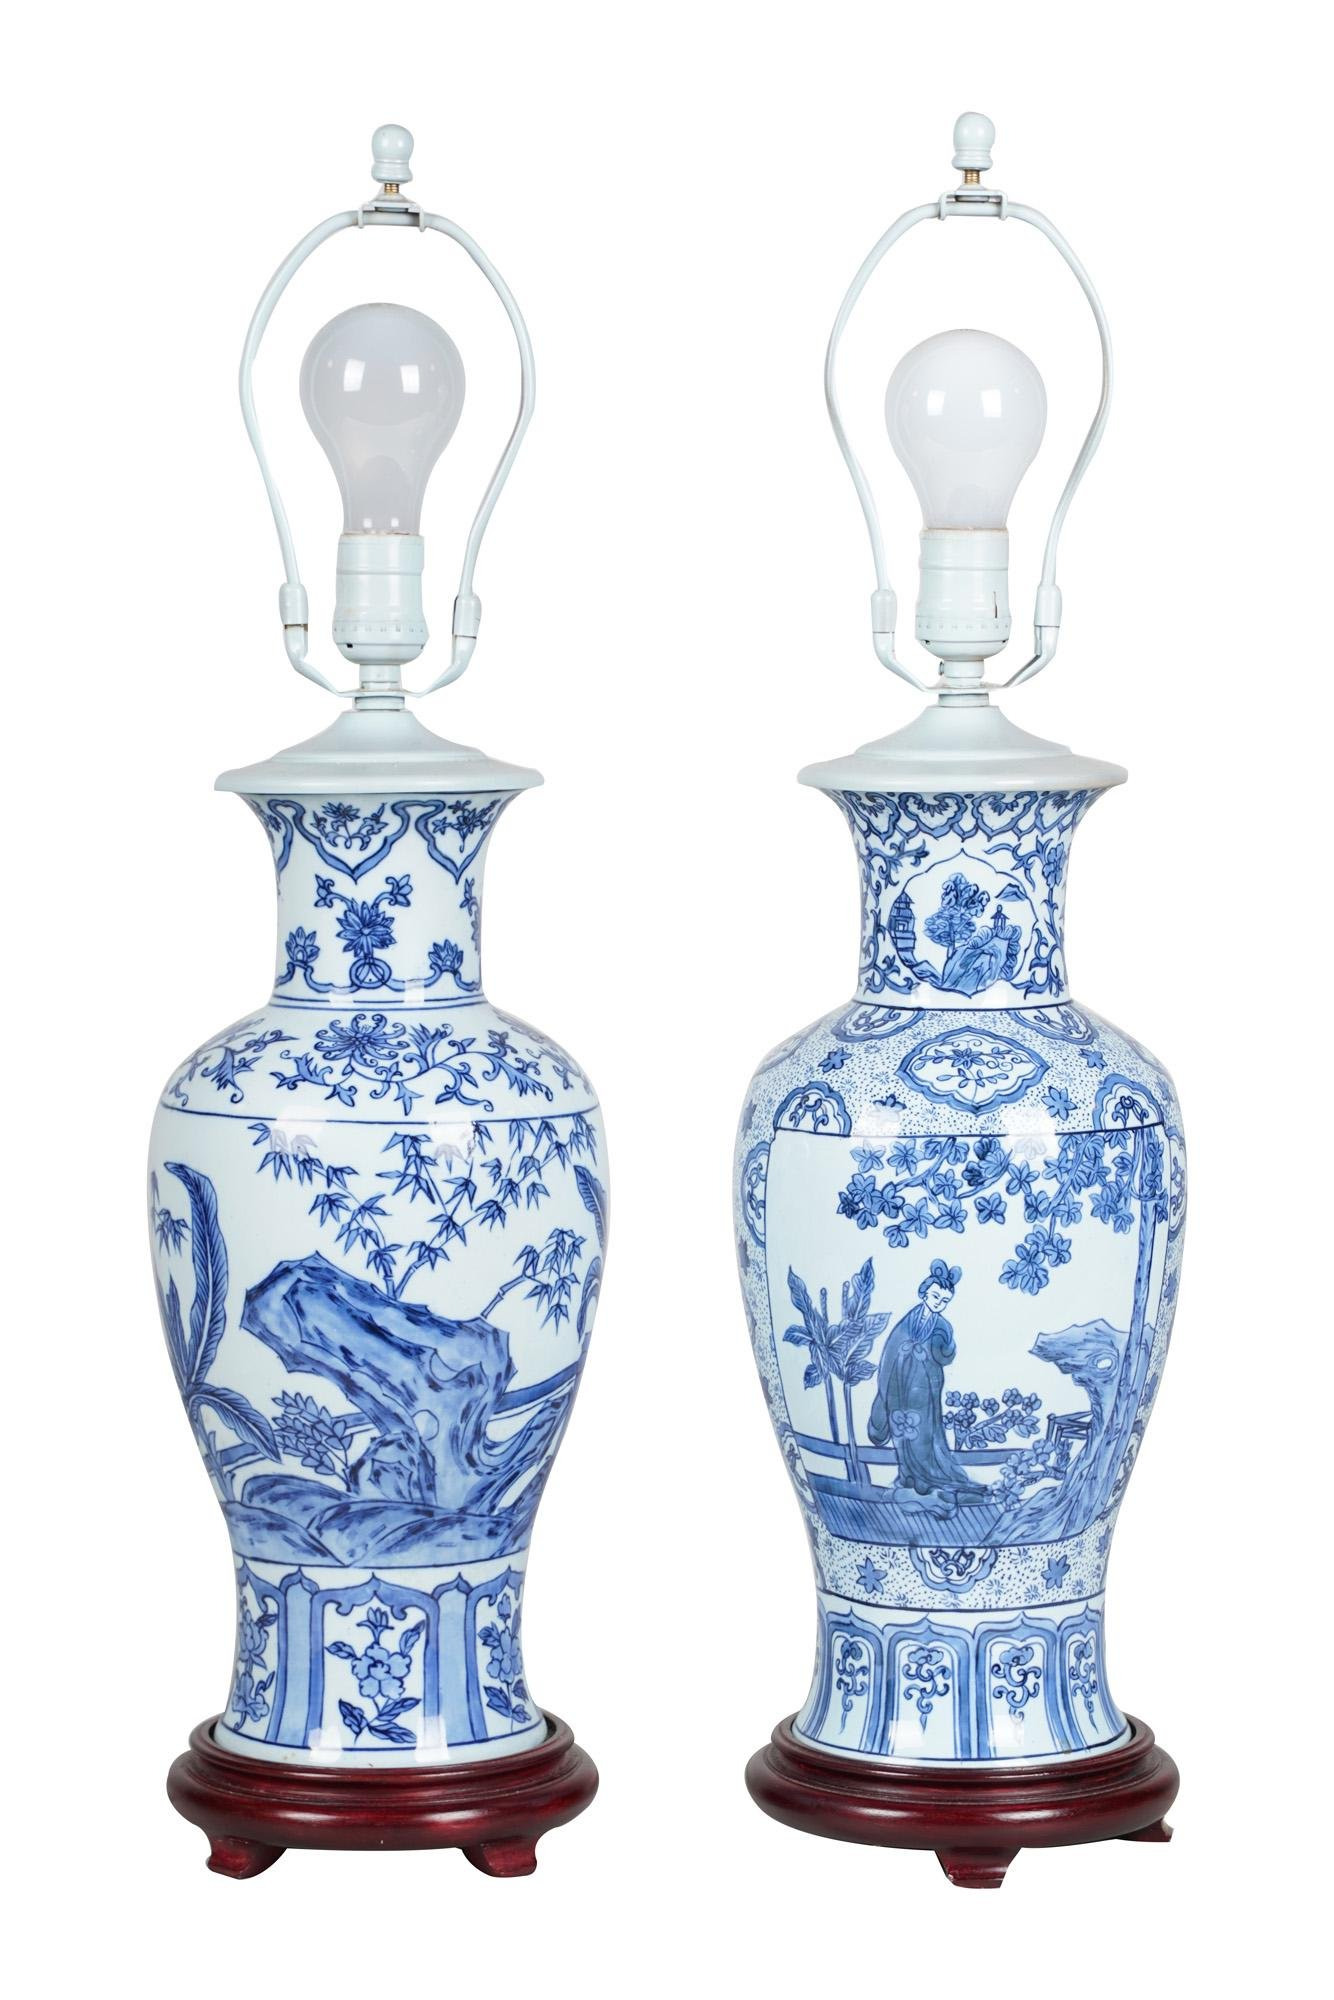 PAIR OF CHINESE BLUE & WHITE PORCELAIN URN FORM TABLE